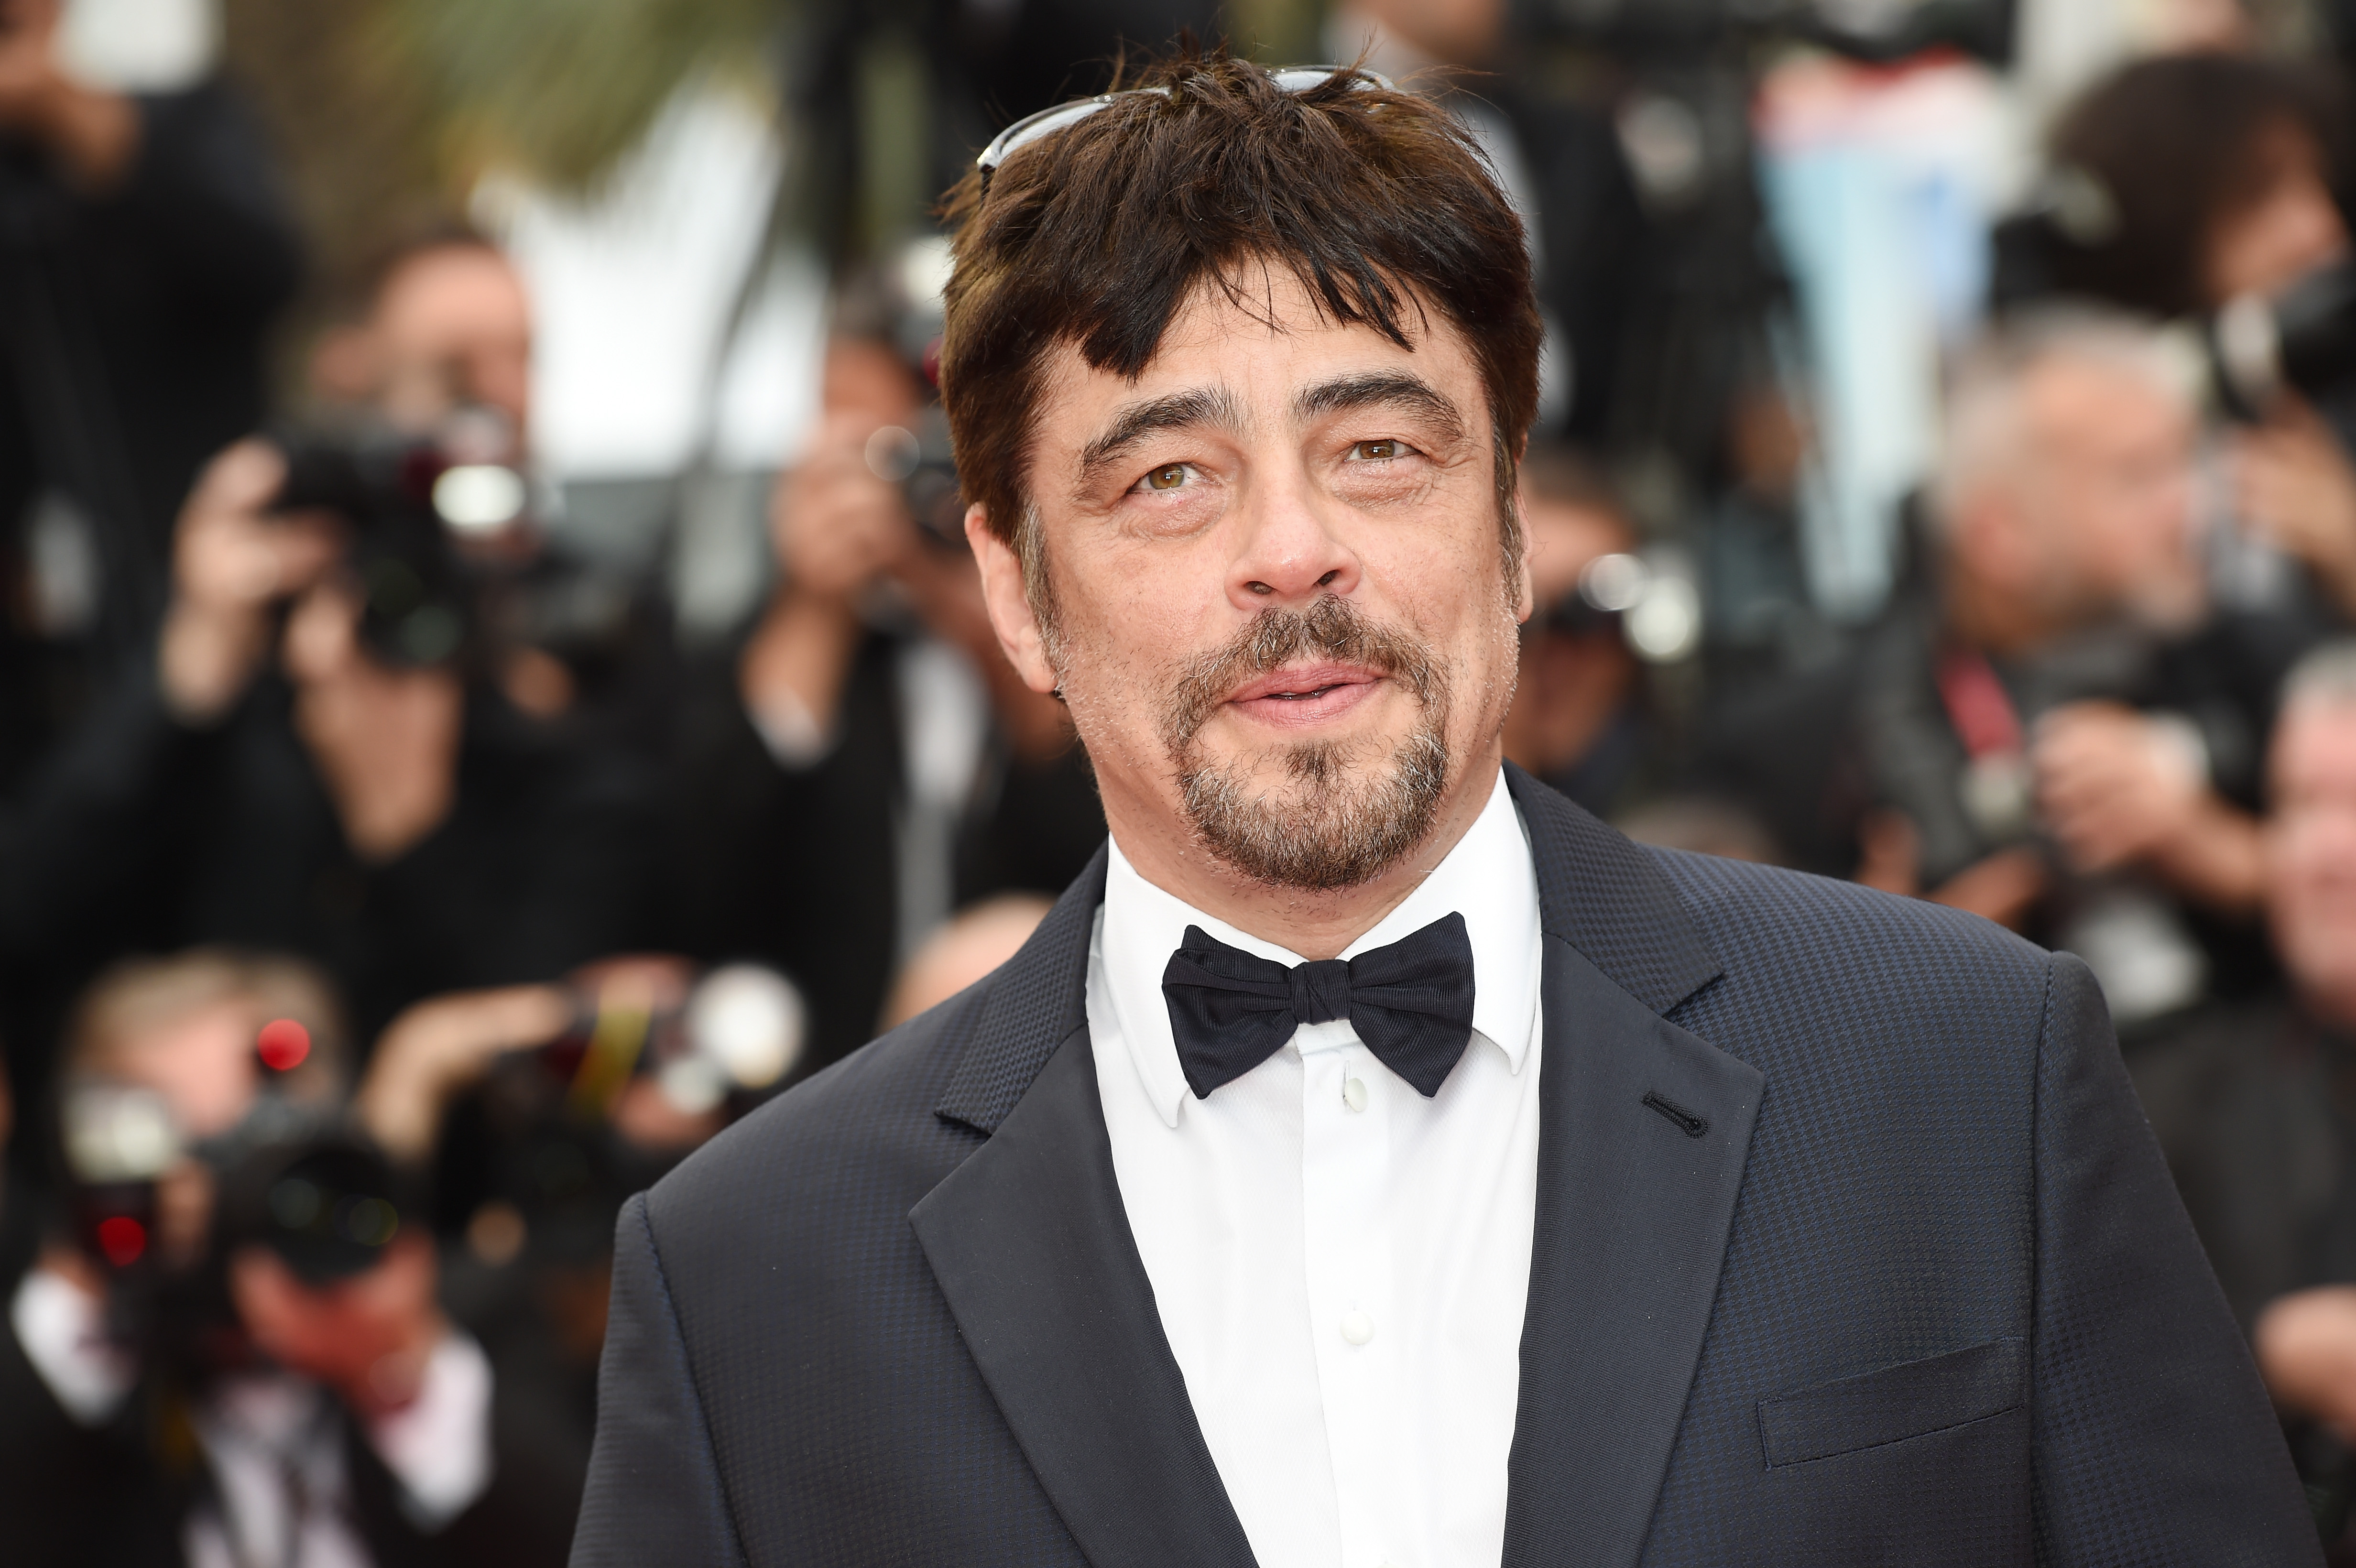 Benicio Del Toro Joins Live-Action 'Dora the Explorer' Movie as its Main Villain, Swiper